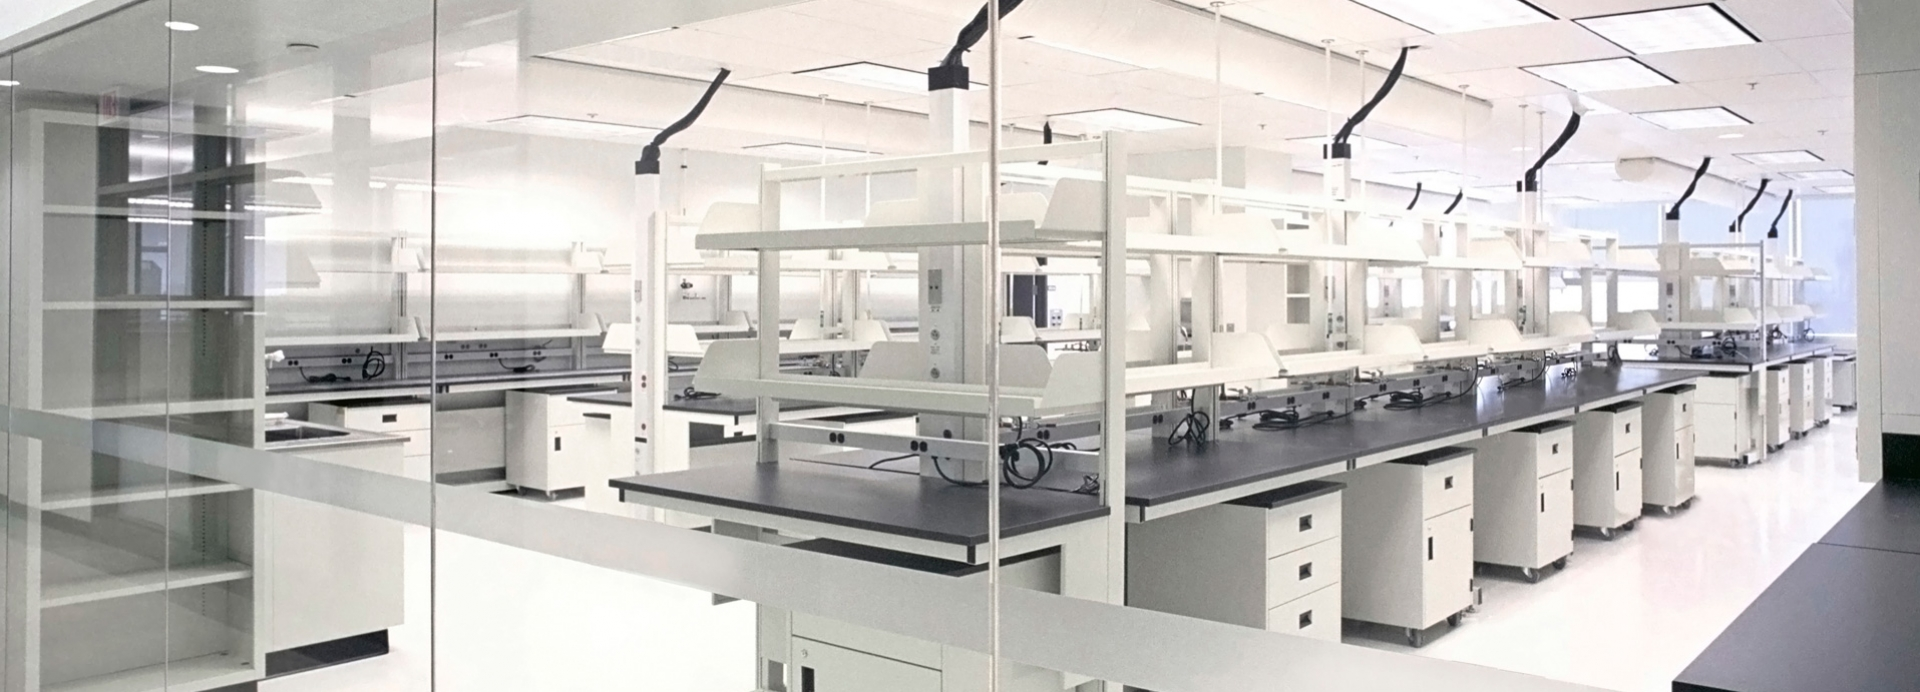 biomedical research lab - photo #9